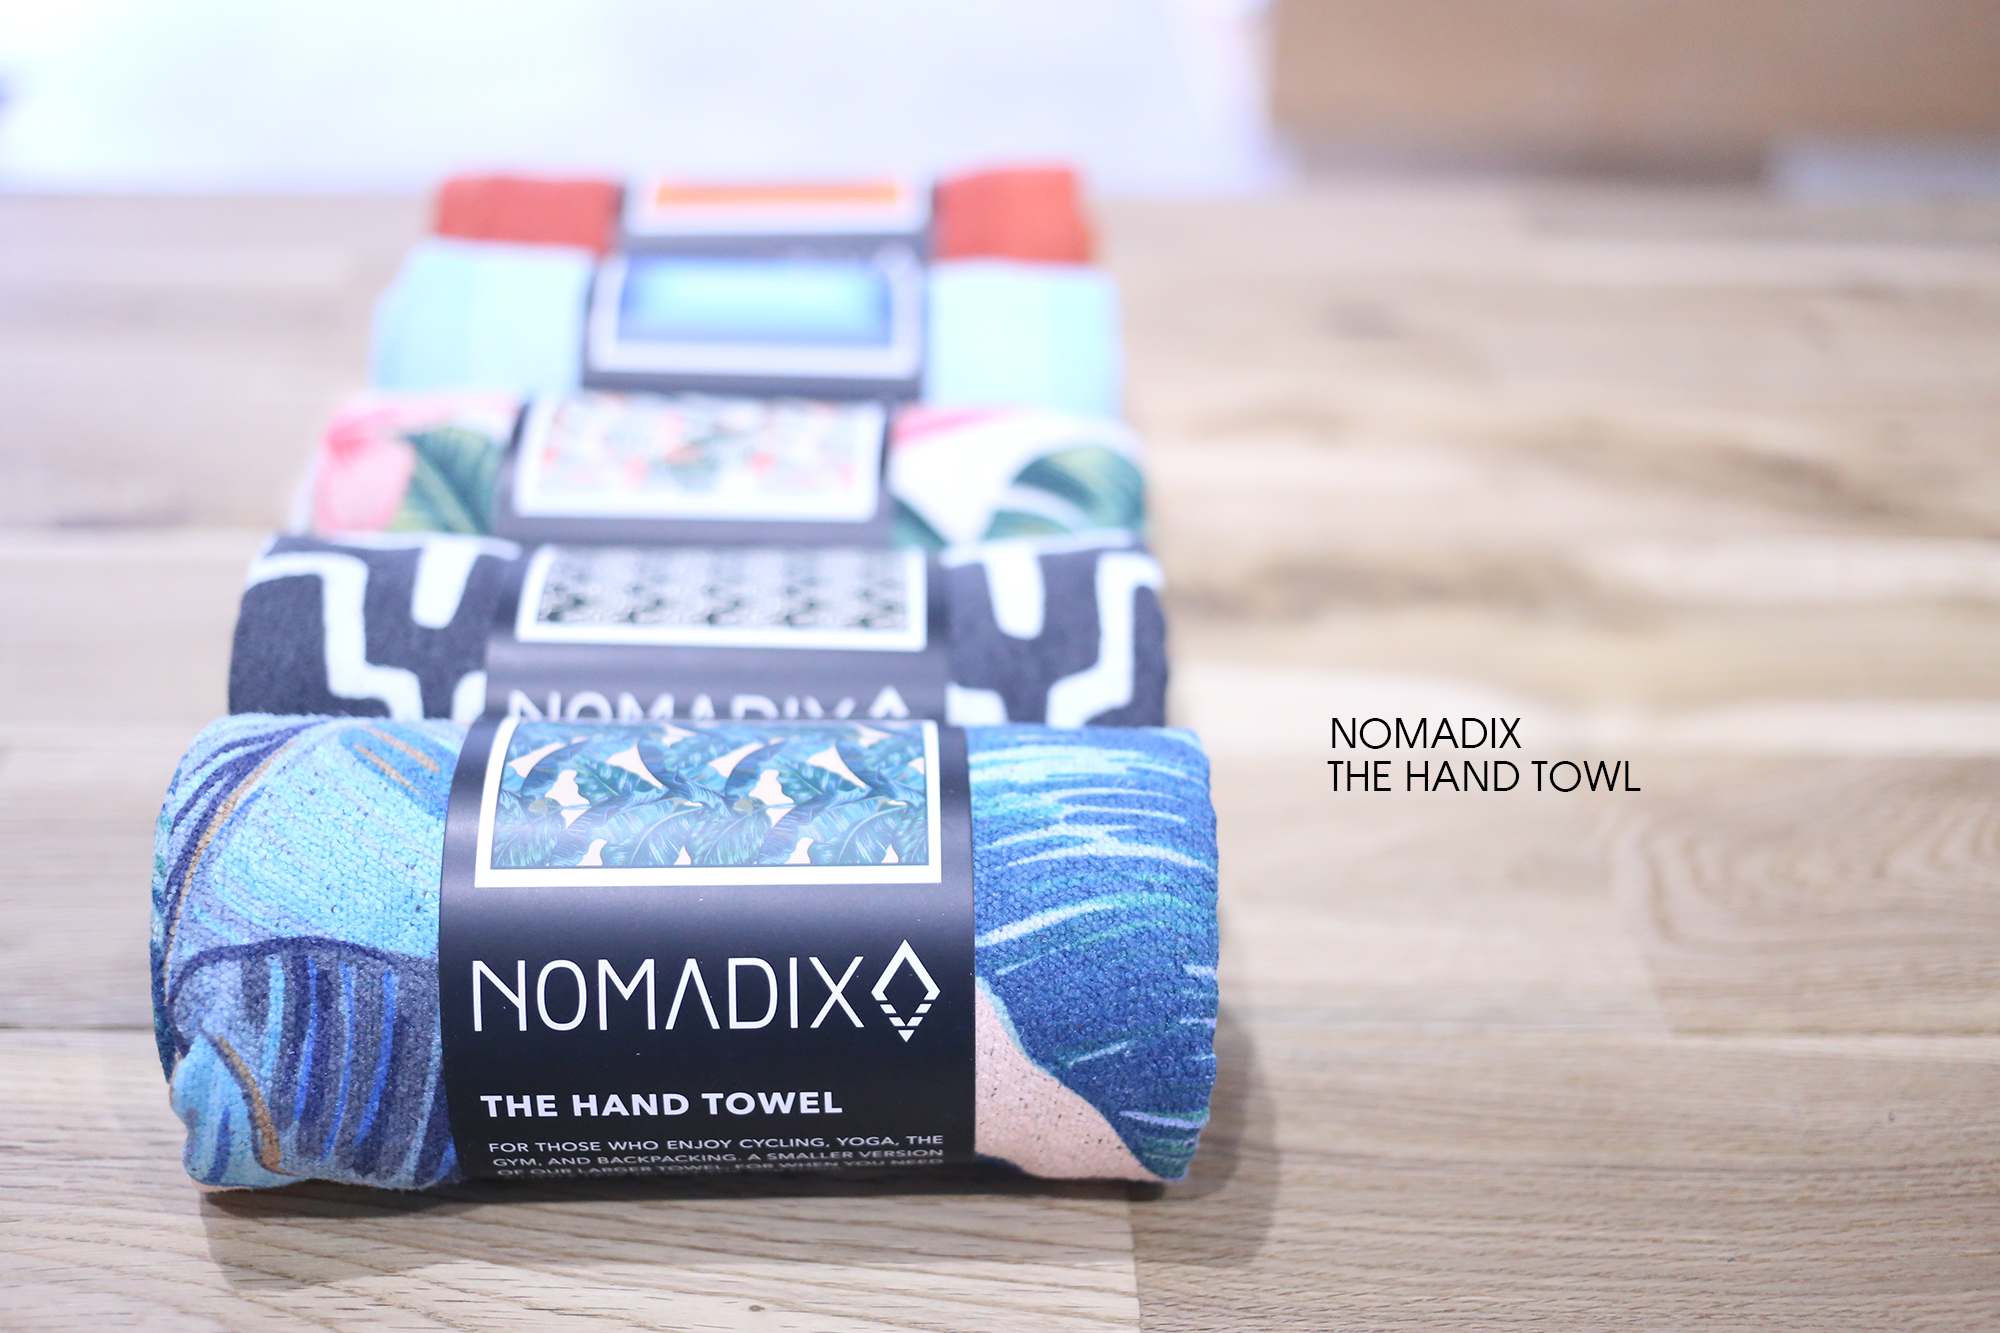 NOMADIX The Hand Towl